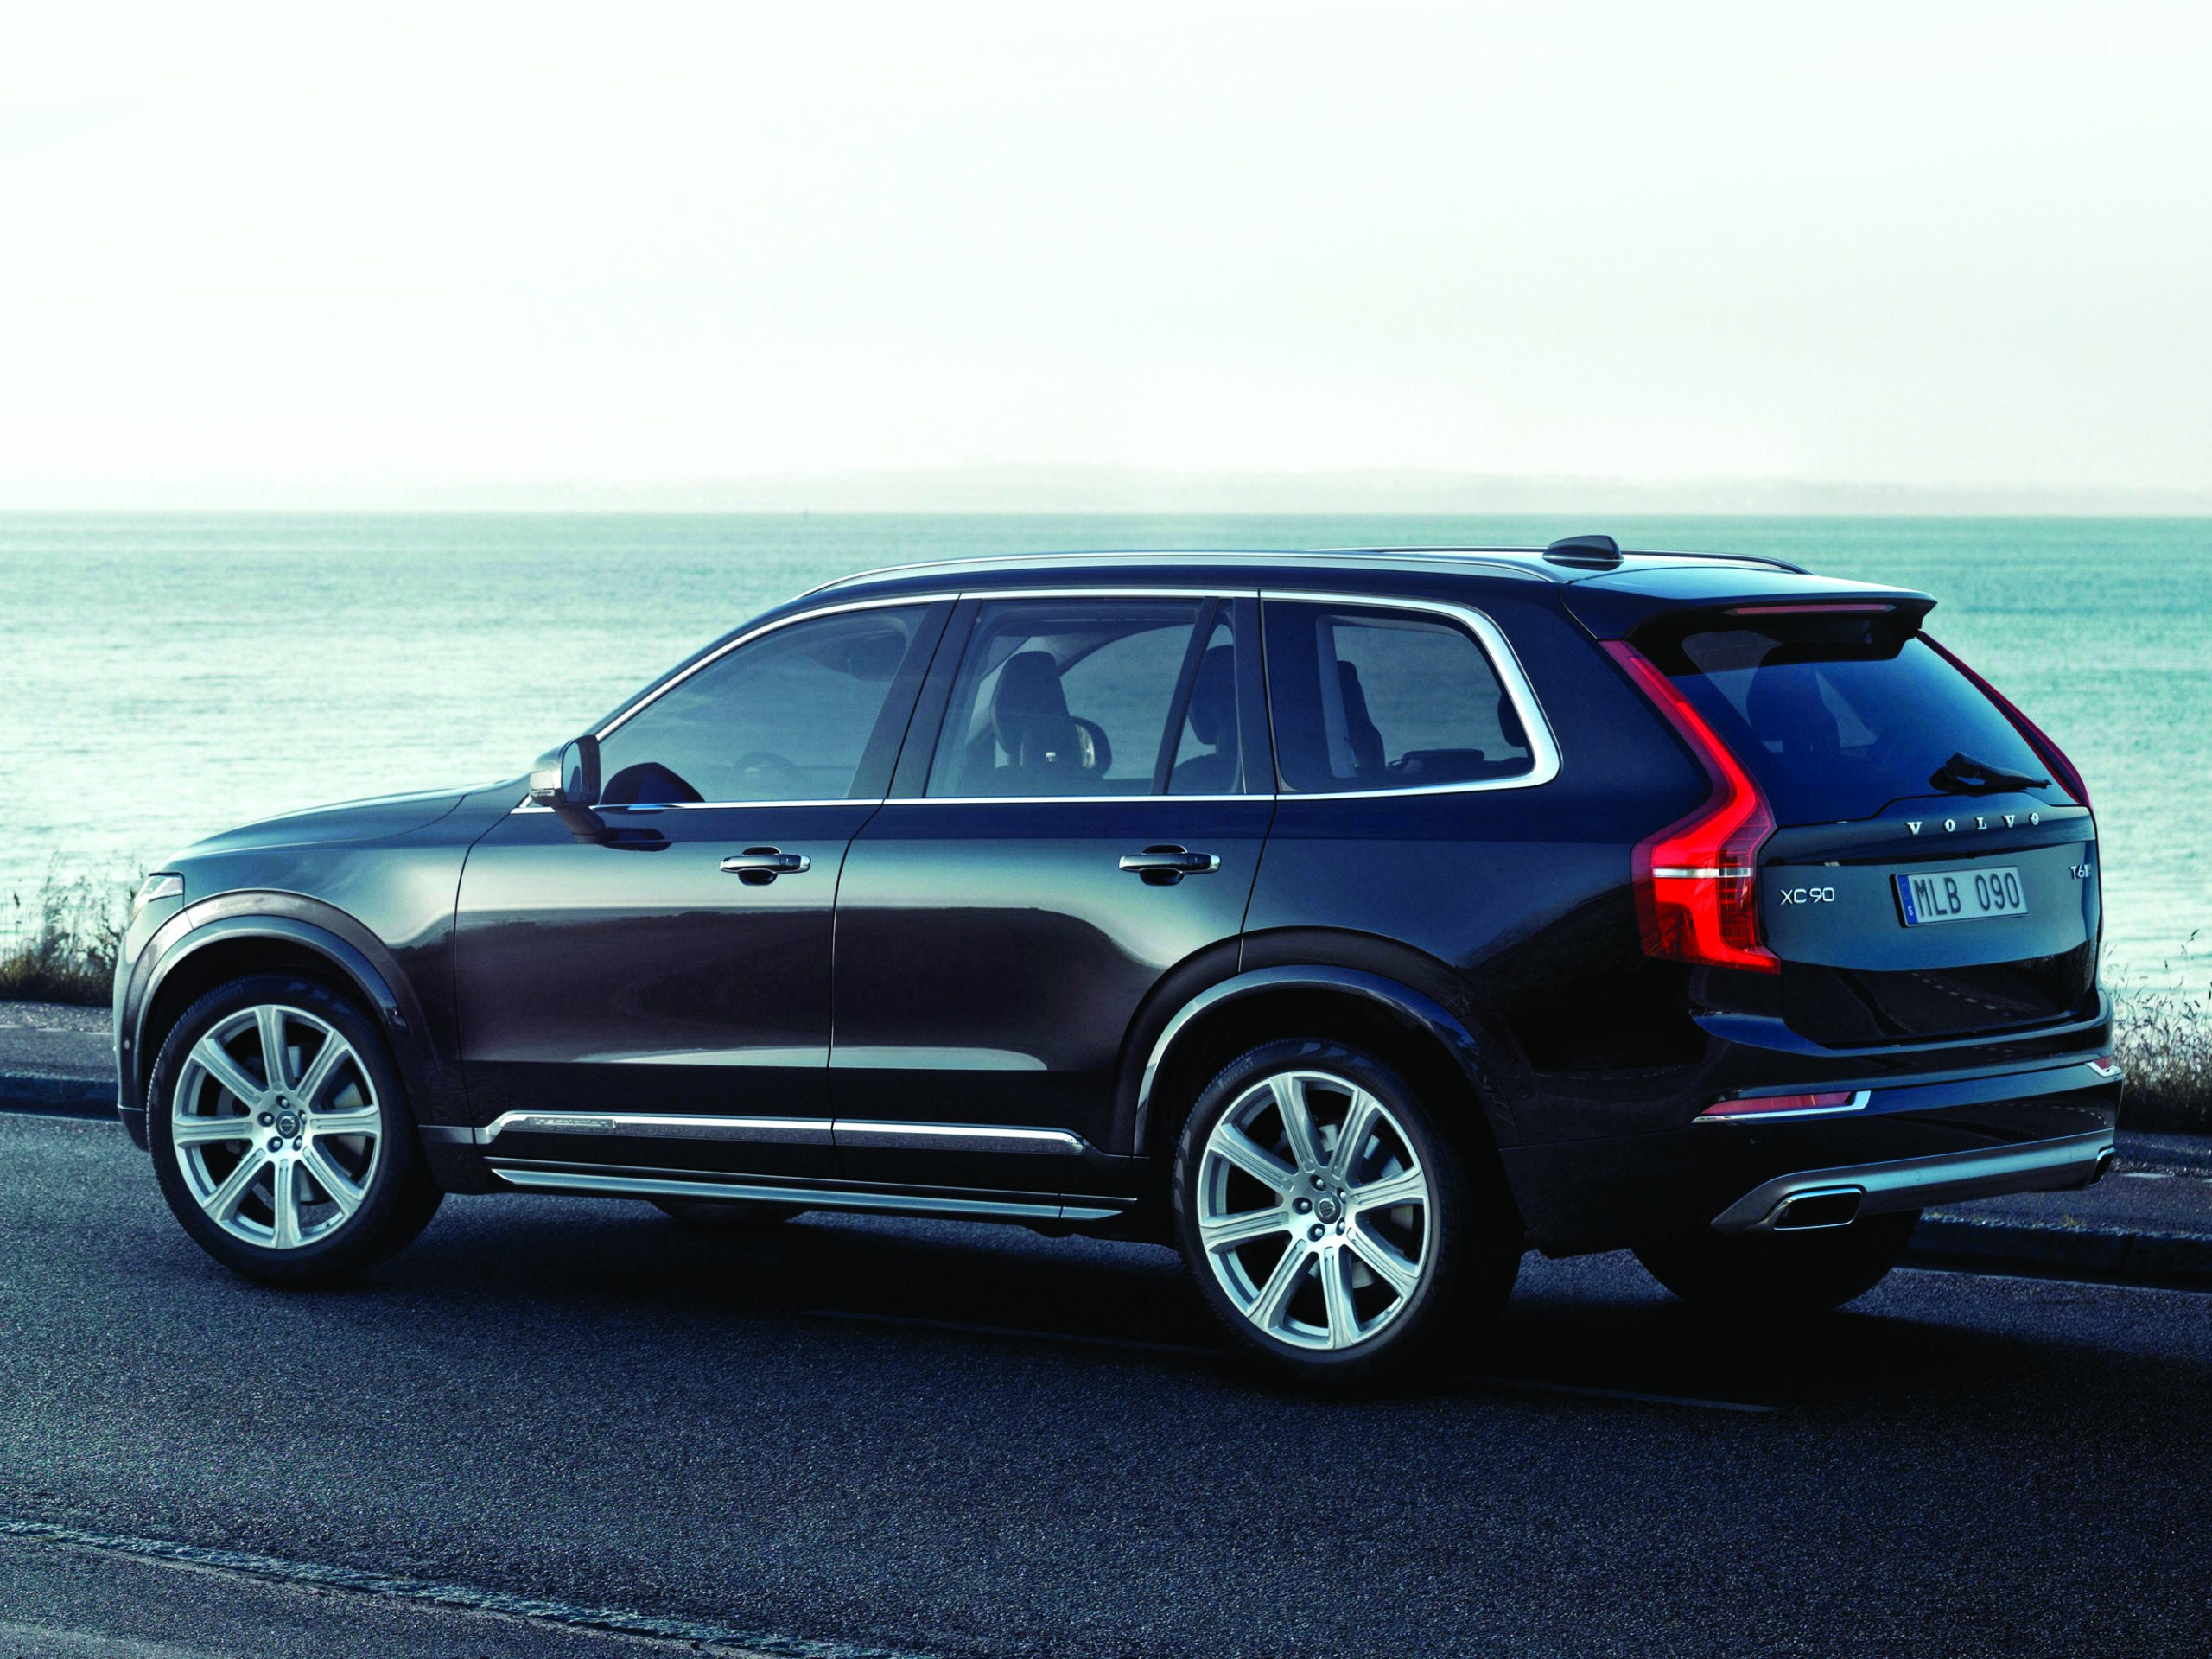 How Volvo Plans To End All Traffic Fatalities By 2020